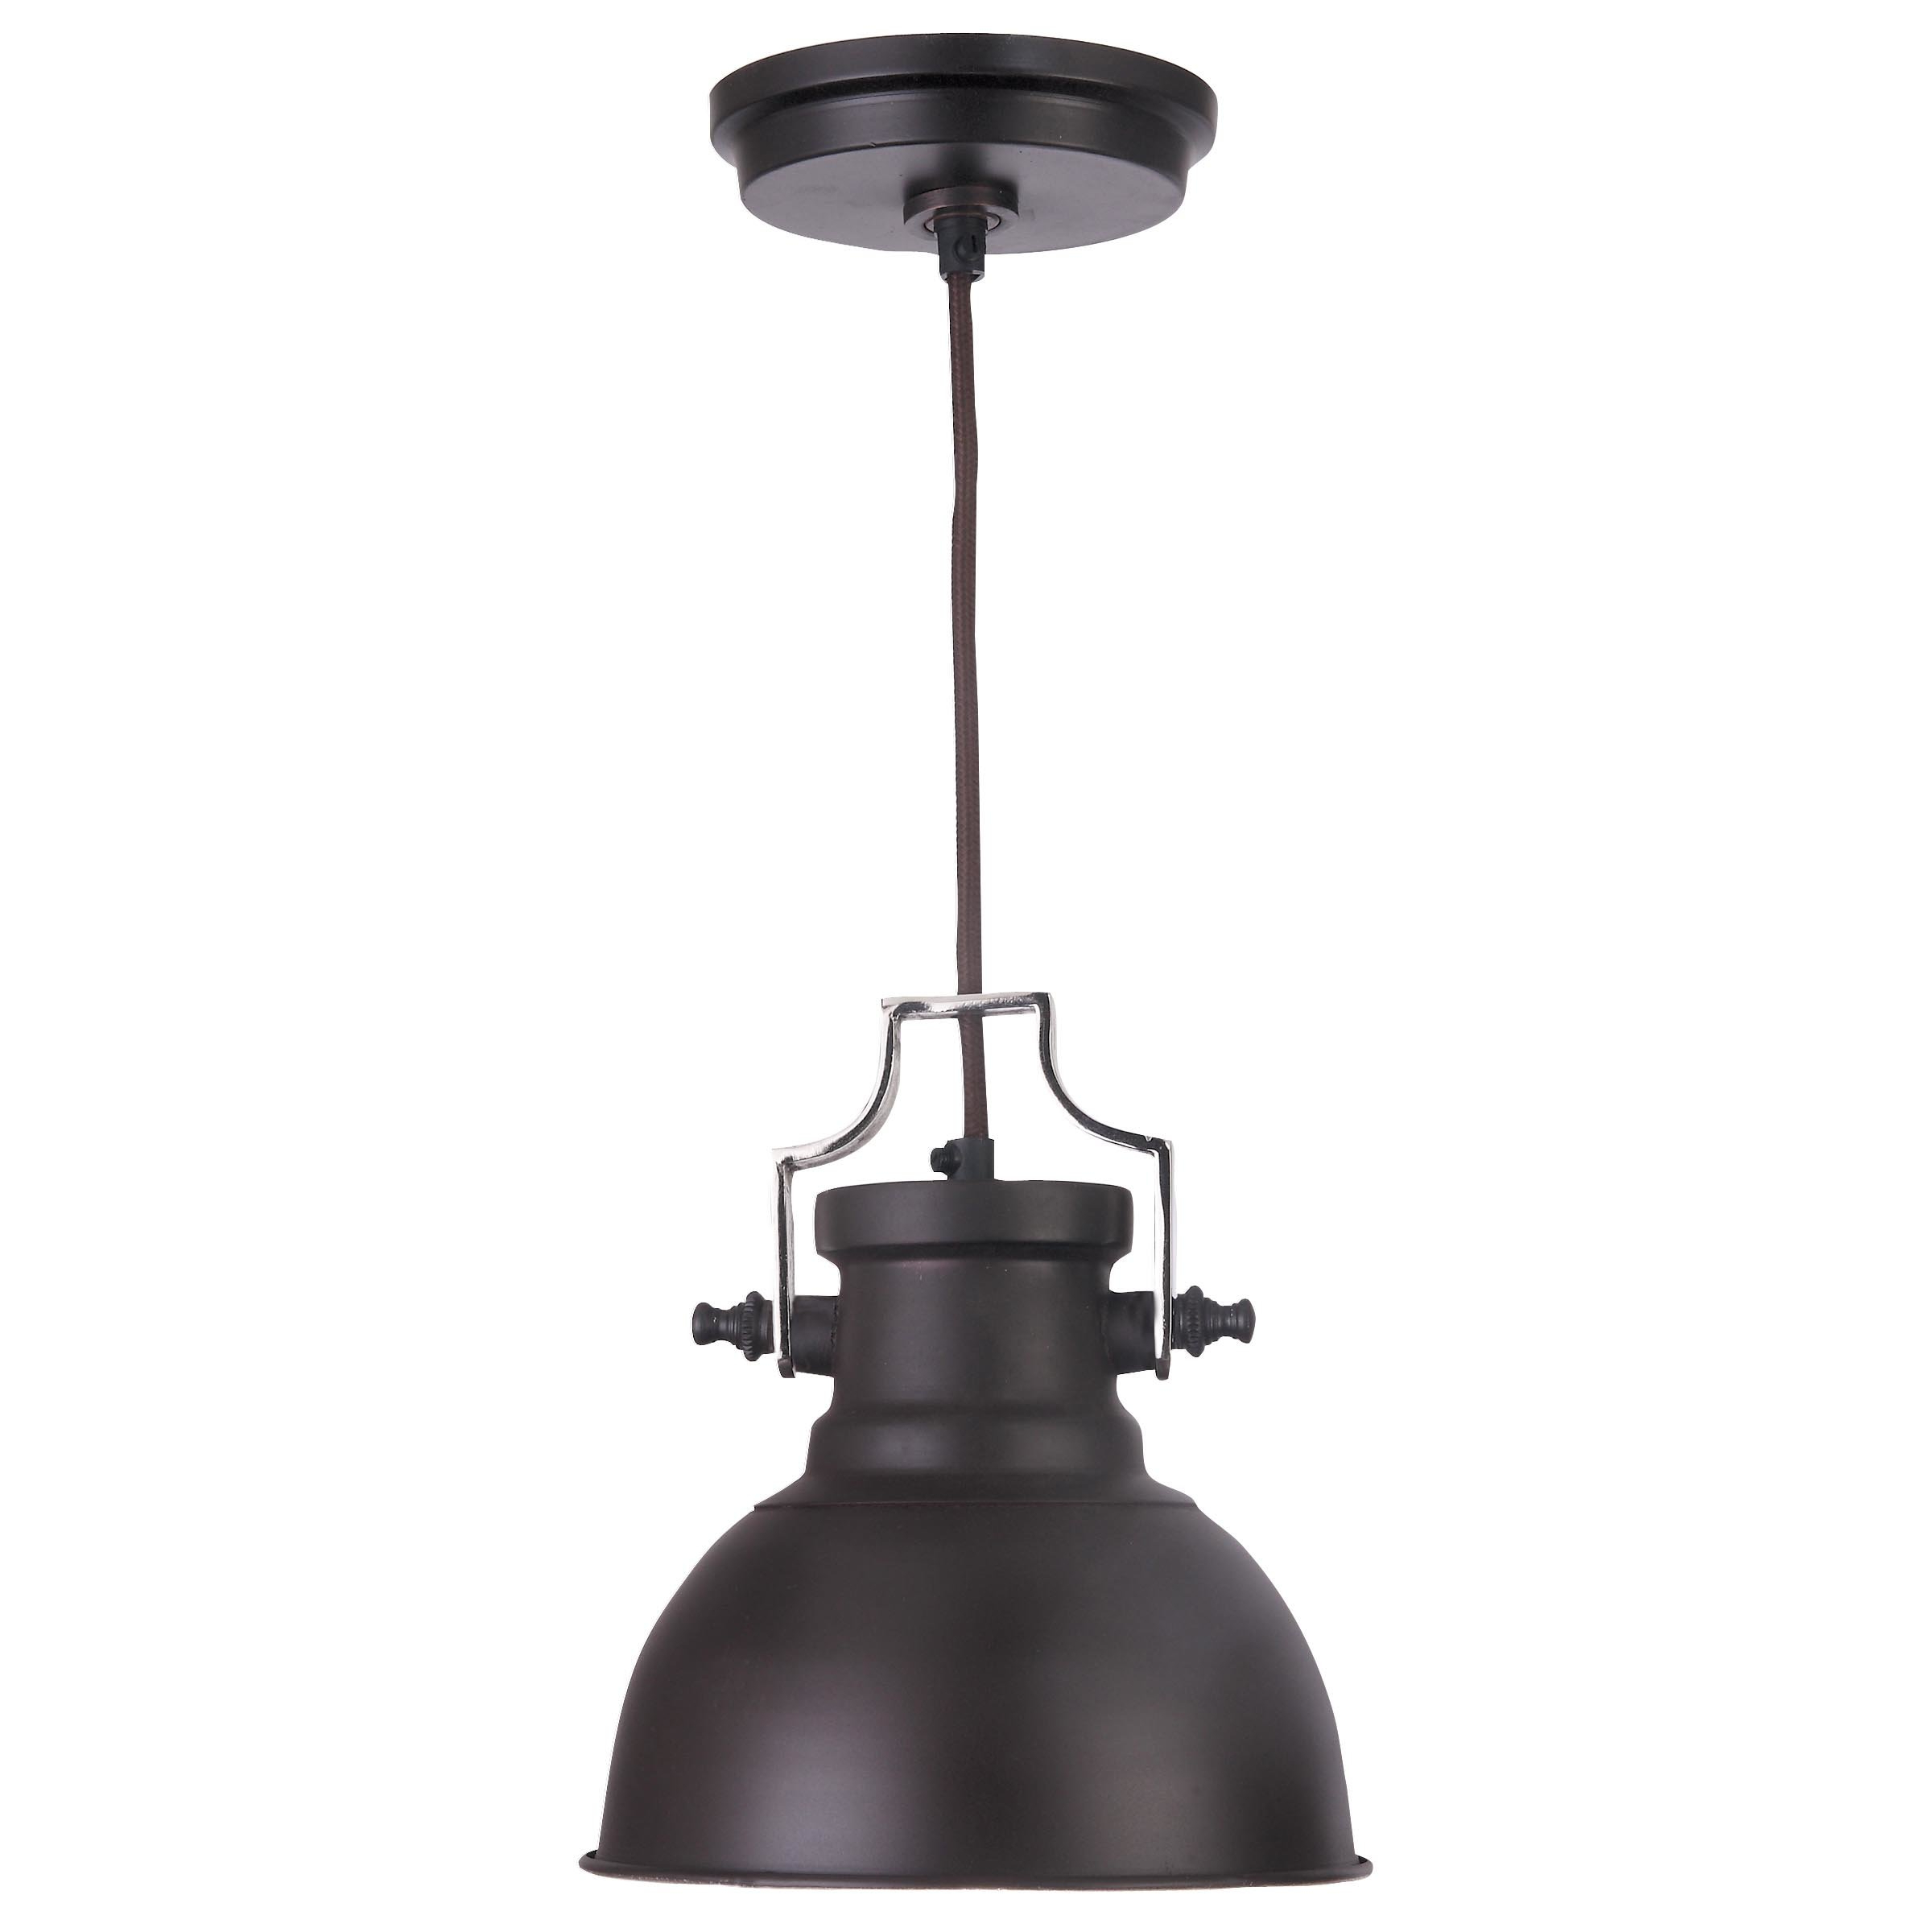 Southlake 1 Light Single Dome Pendants Pertaining To Latest Jules 1 Light Single Dome Pendant & Reviews (View 16 of 20)